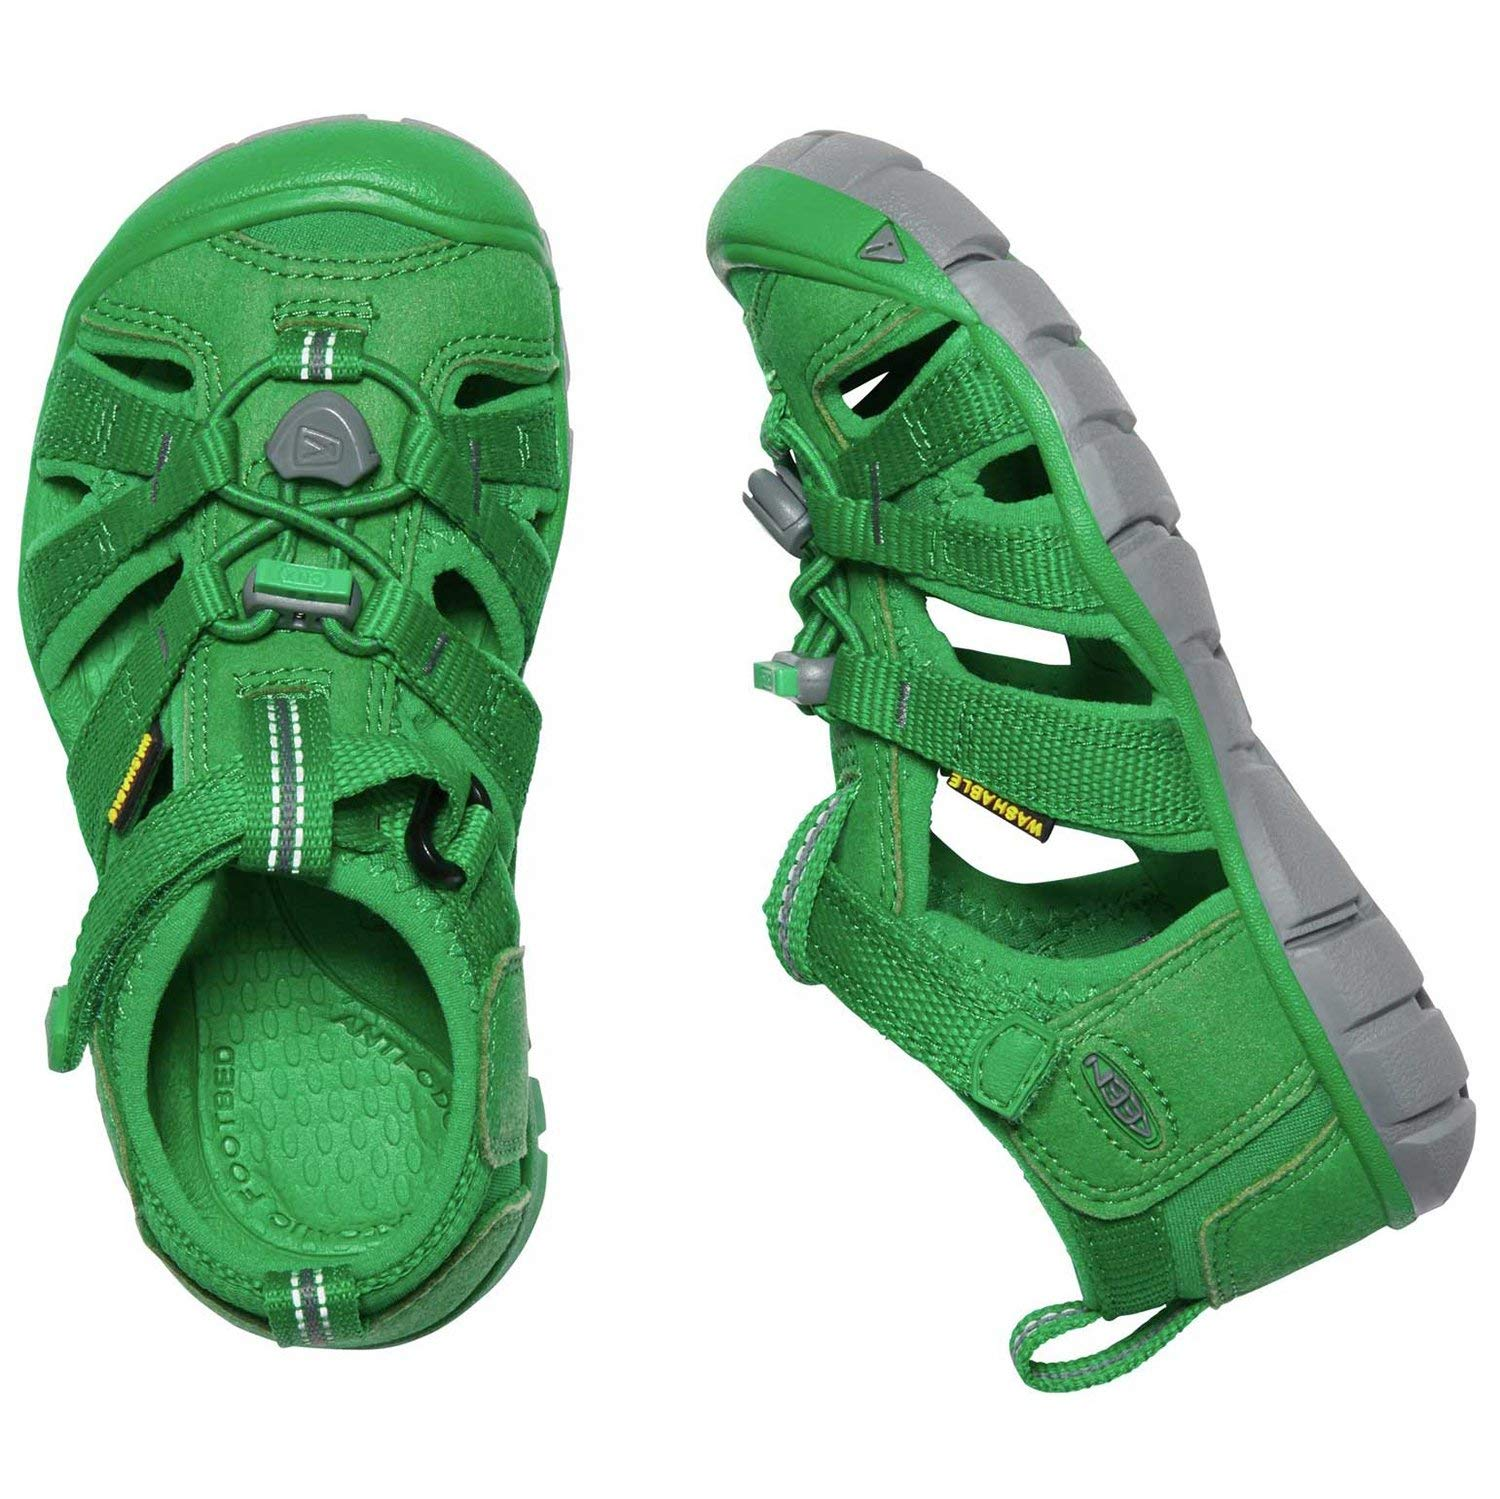 Keen - 1020680-1020680 - Color: Green - Size: 11.0 by Keen (Image #3)